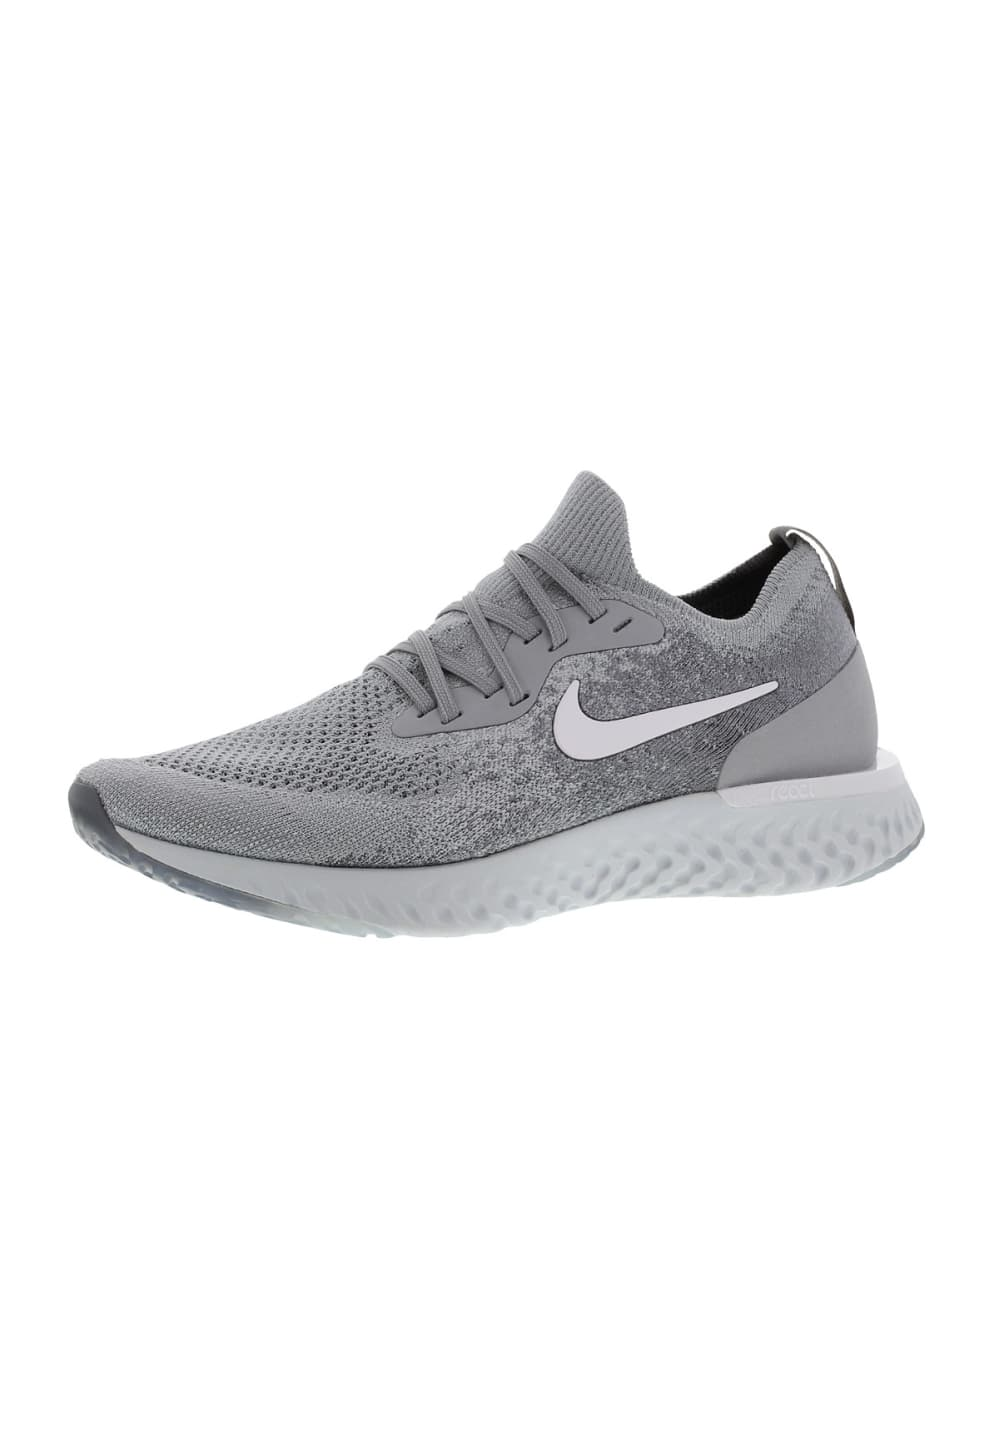 plus récent f485c ba7c9 Nike Odyssey React - Chaussures running pour Femme - Gris